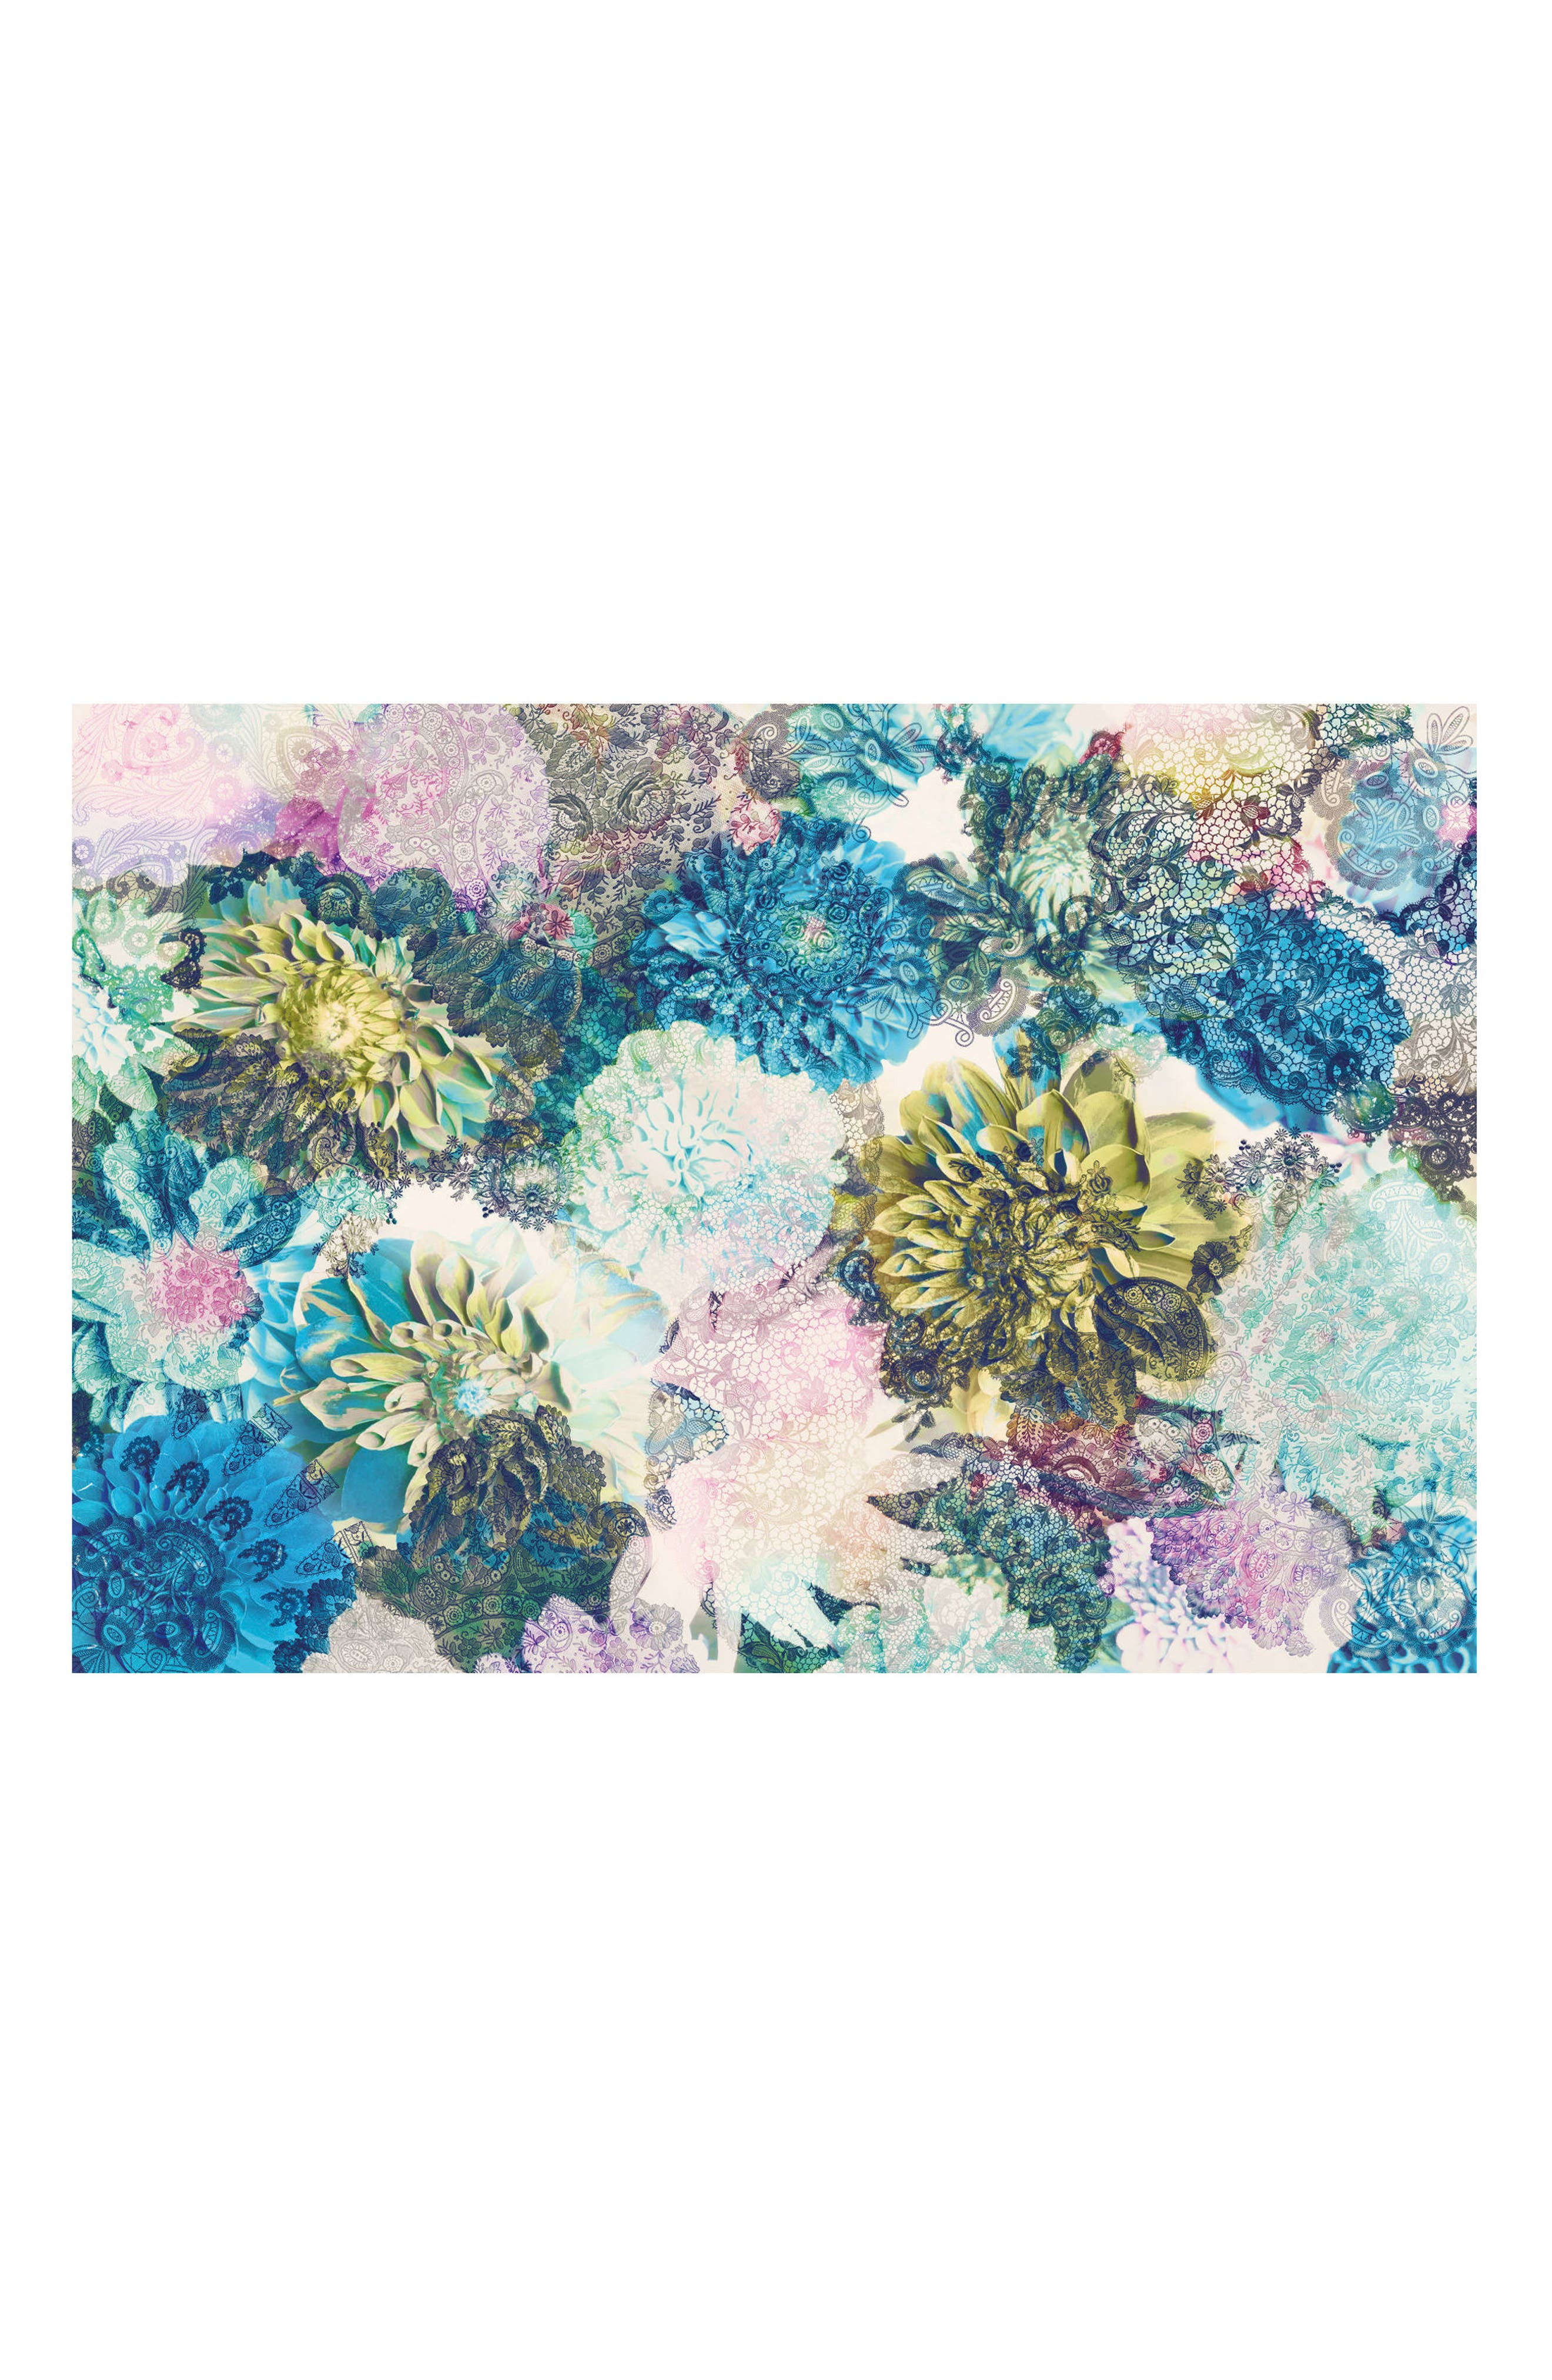 Frisky Flowers Wall Mural,                         Main,                         color, Multi-Color